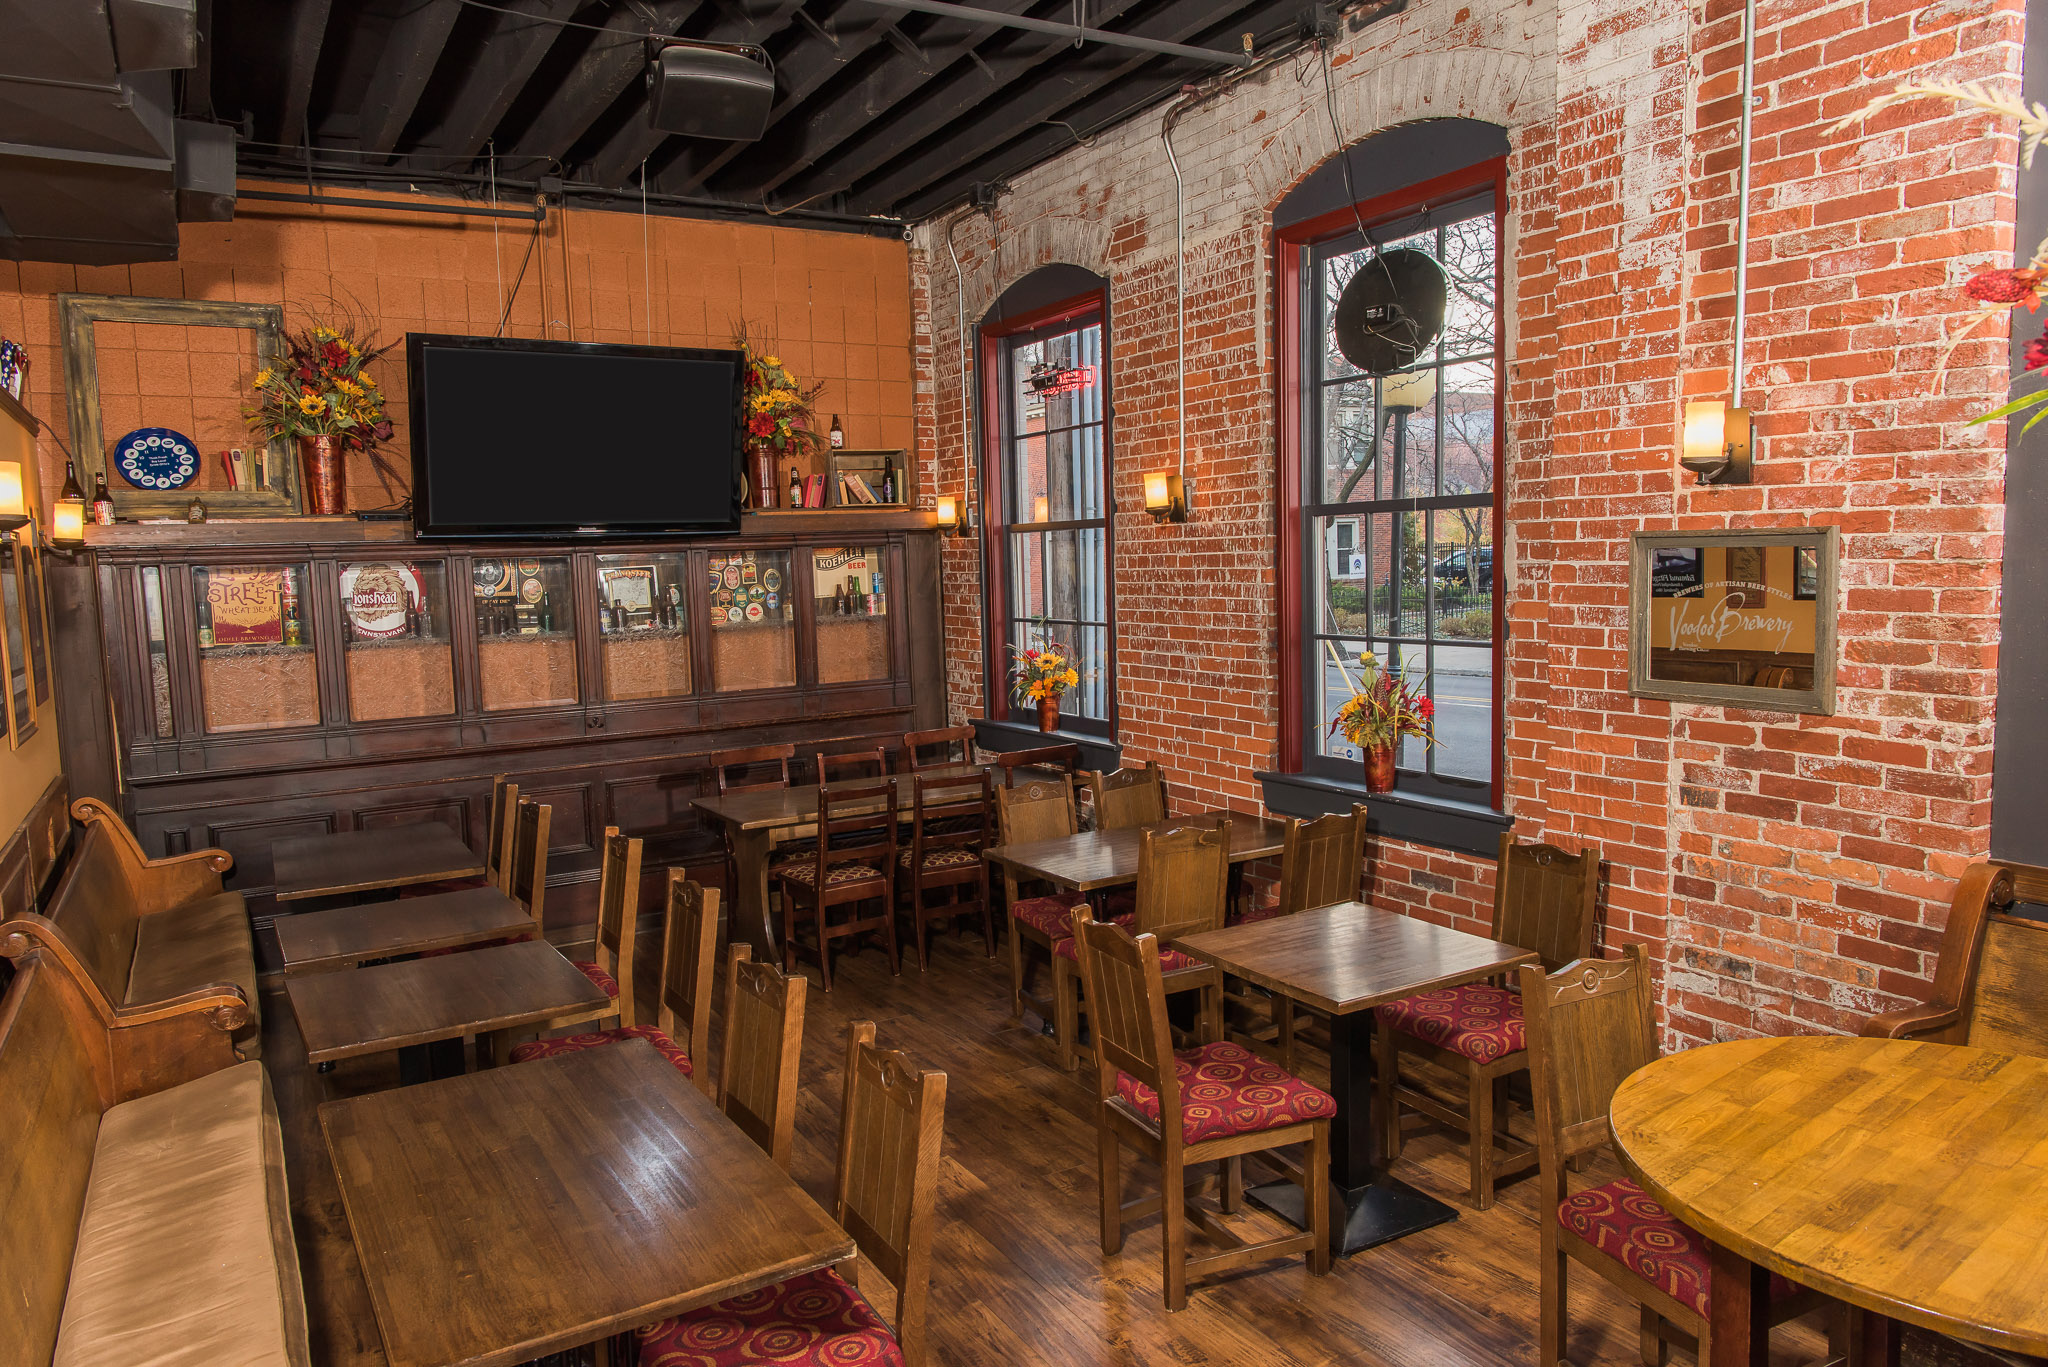 upick6 Tap House Dining Room